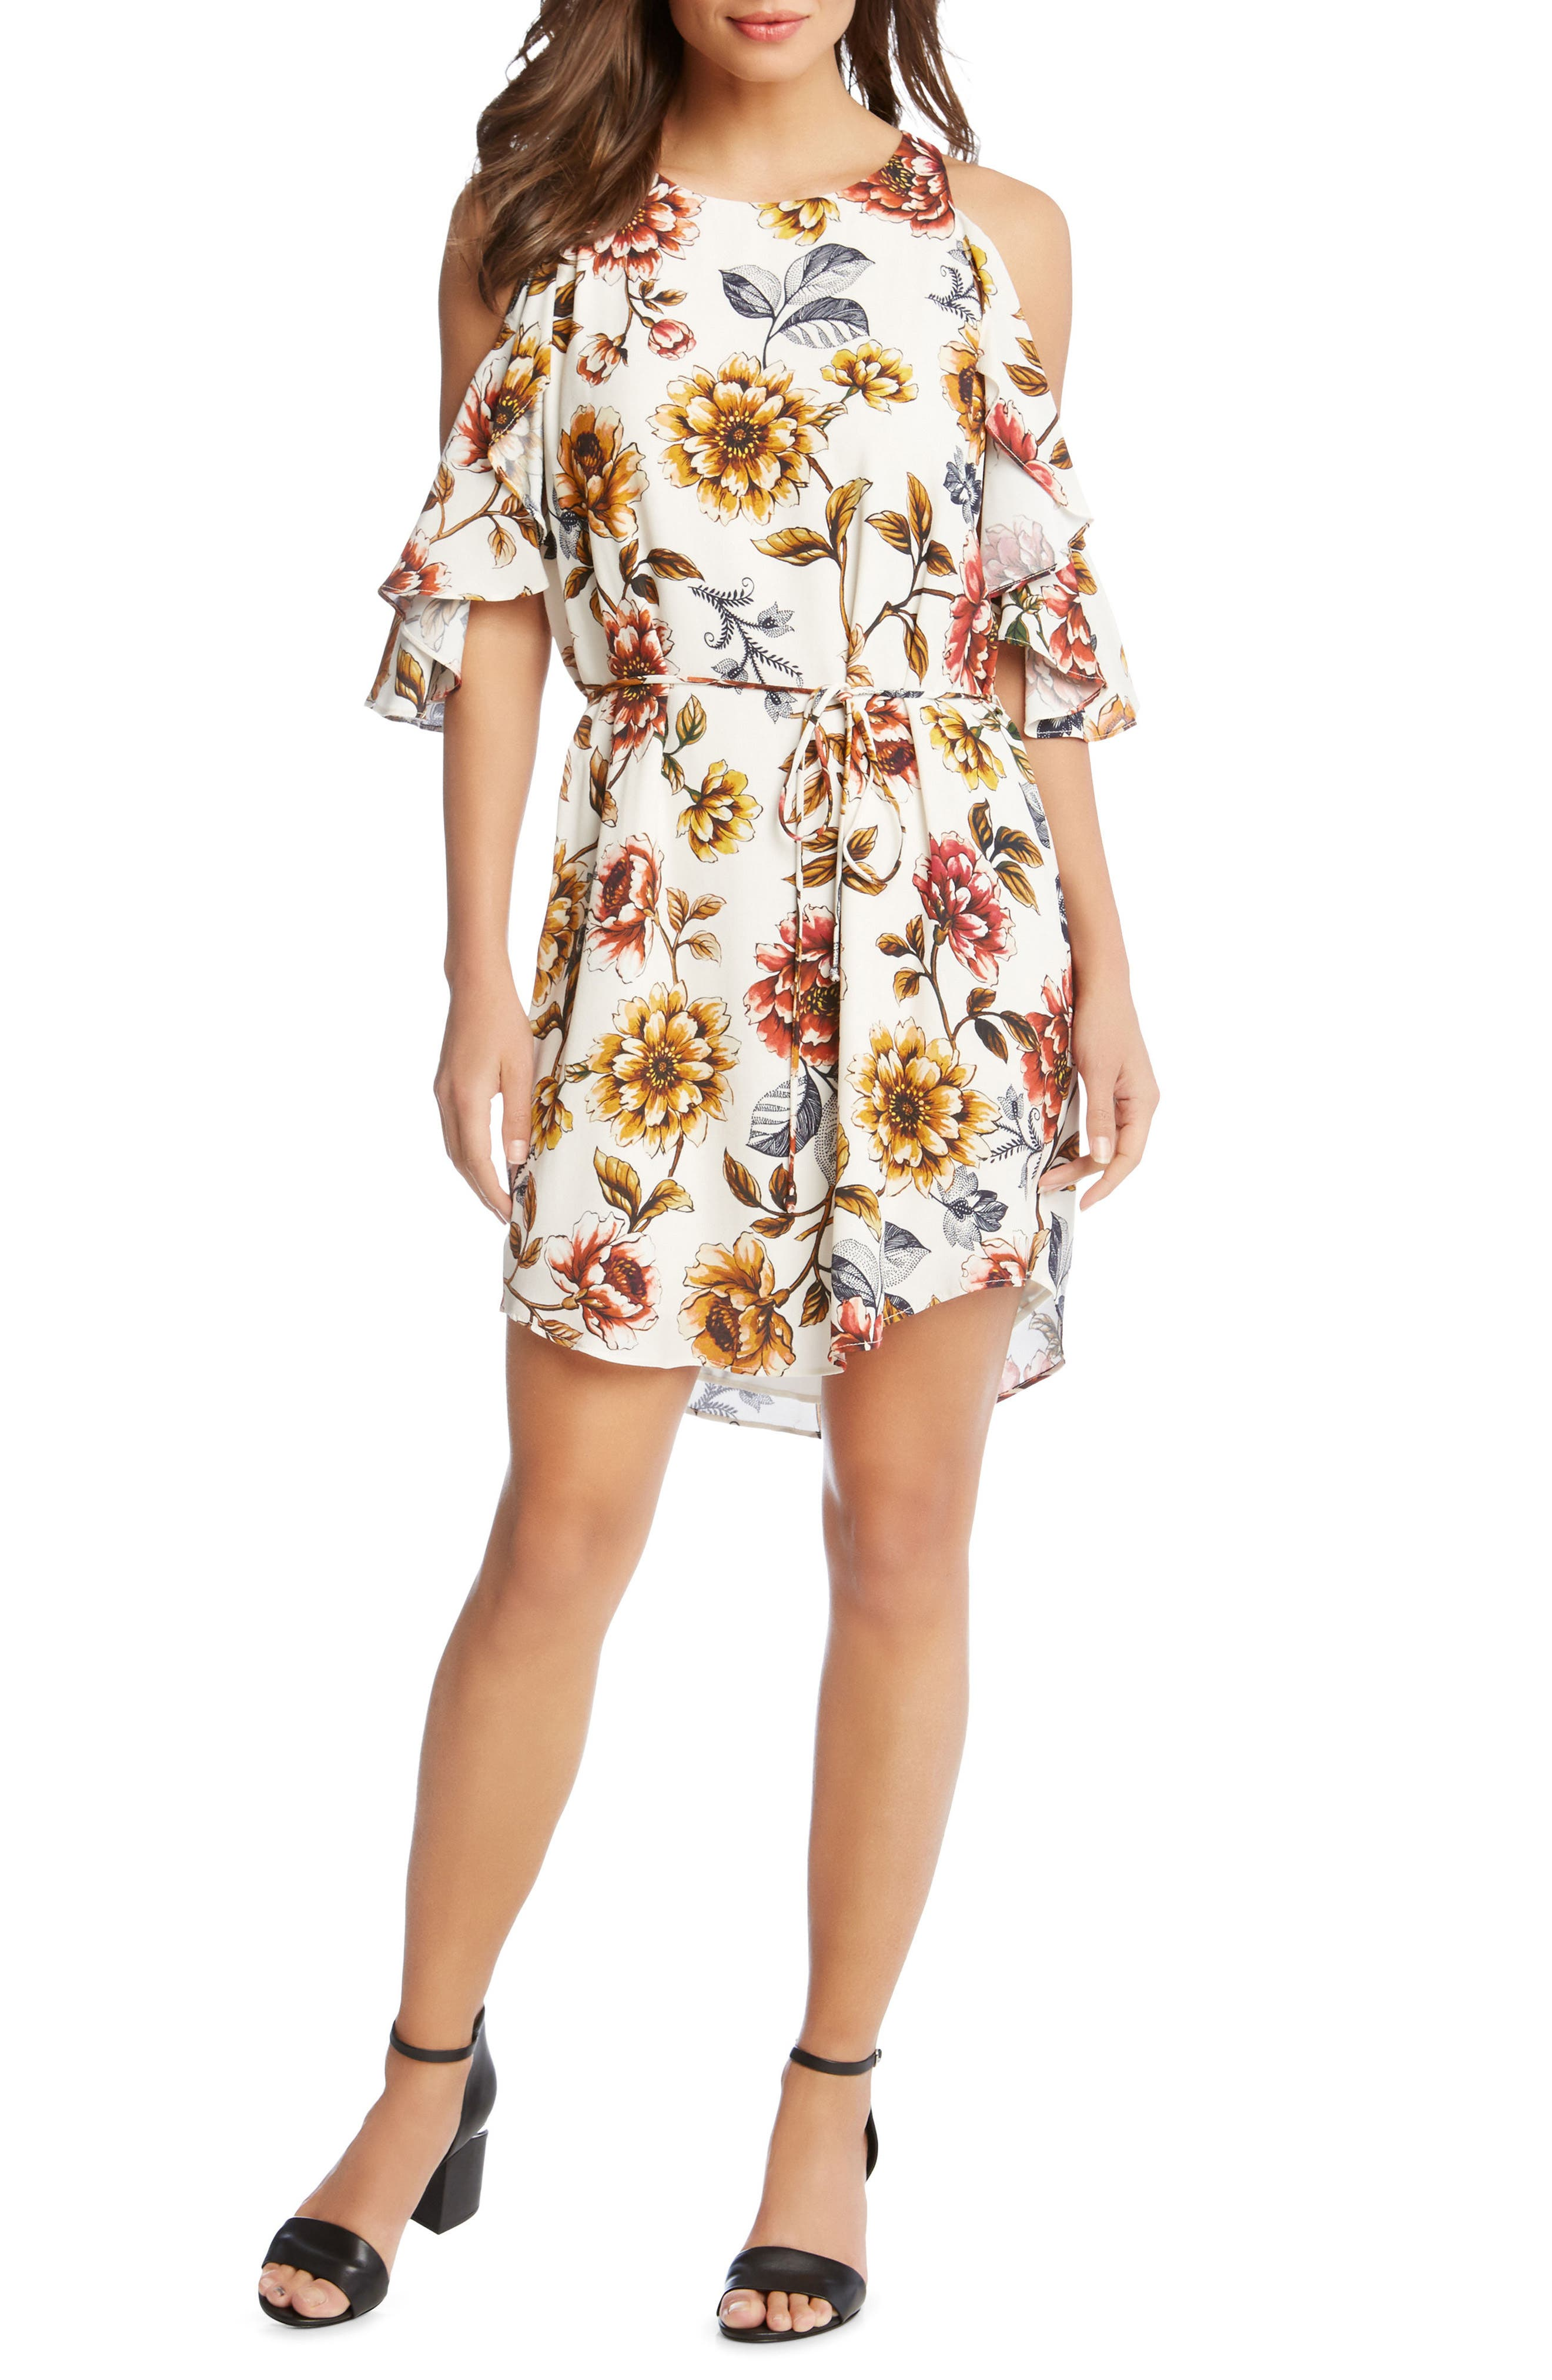 Kane Kane Cold Shoulder Floral Dress,                         Main,                         color, PRINT